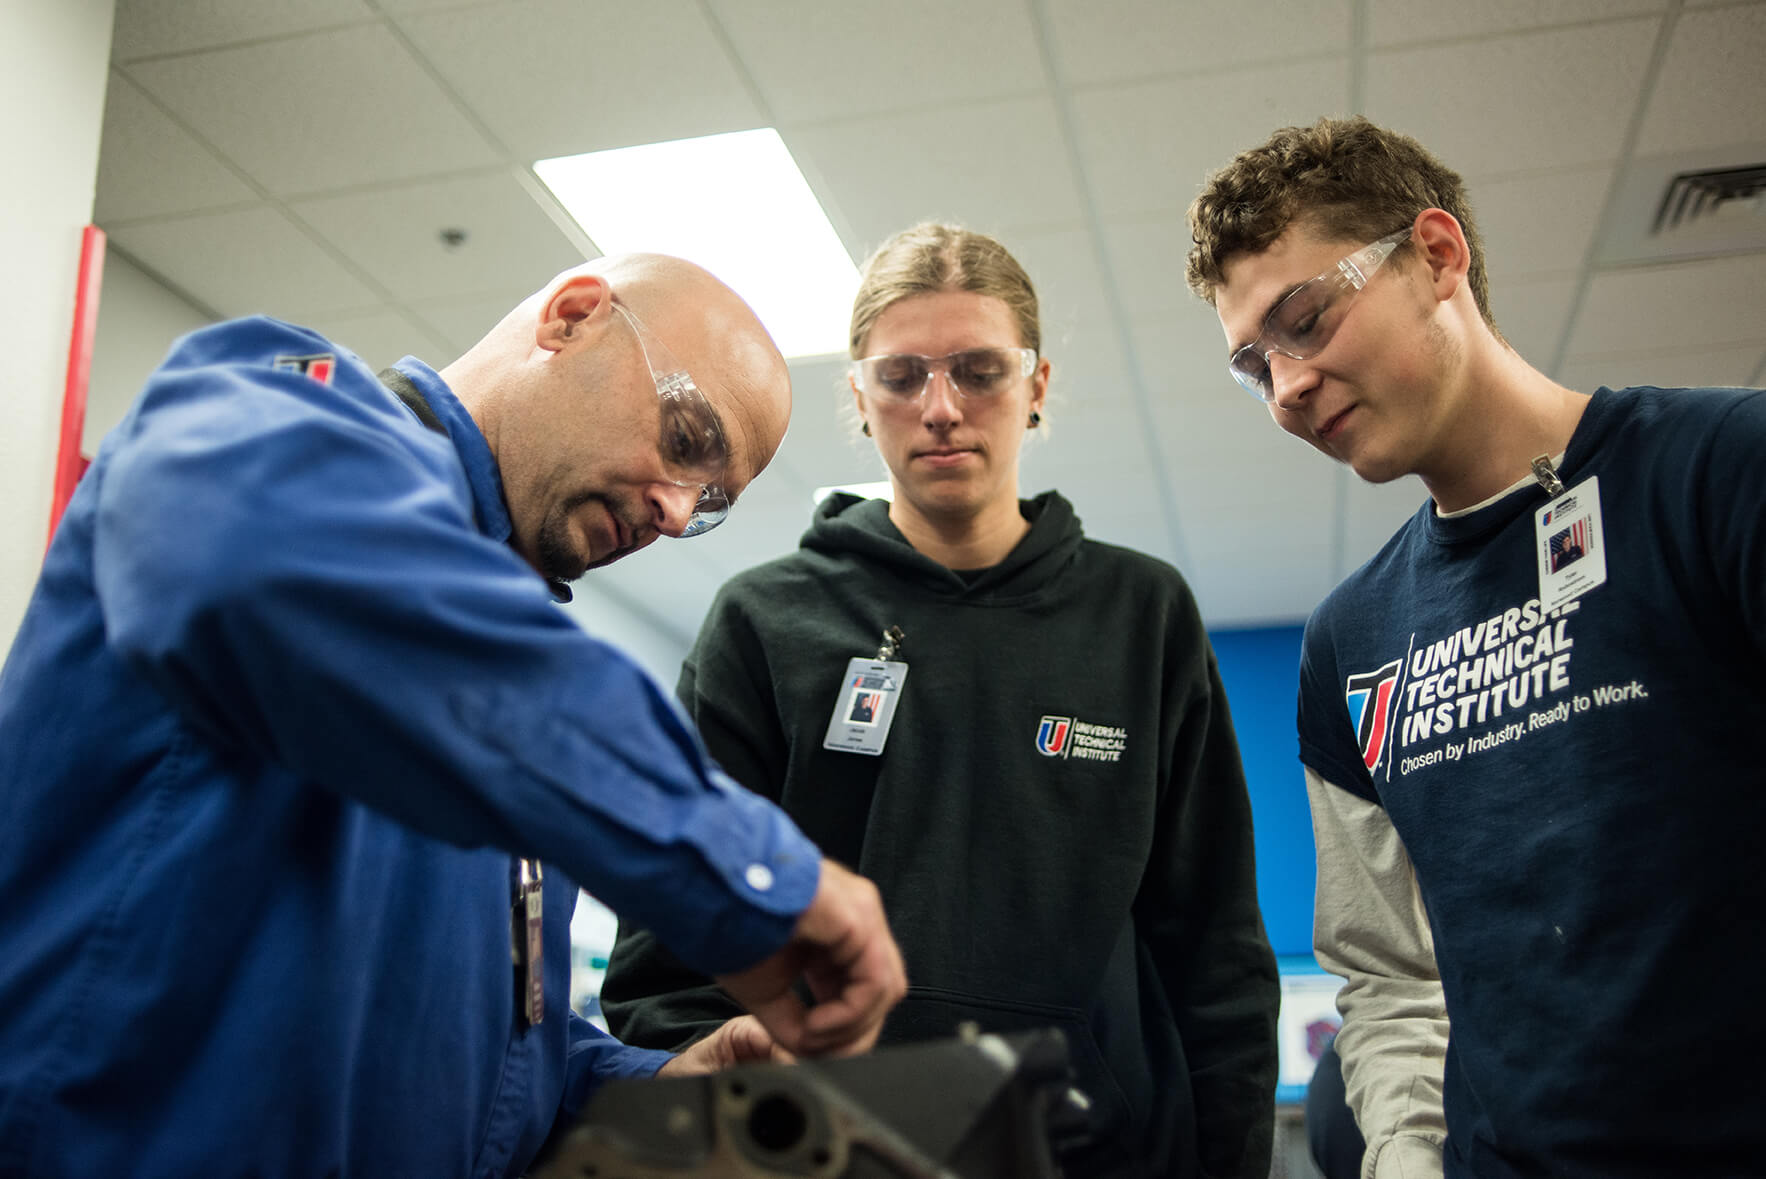 An instructor with two students on automotive components at UTI's Ignite program